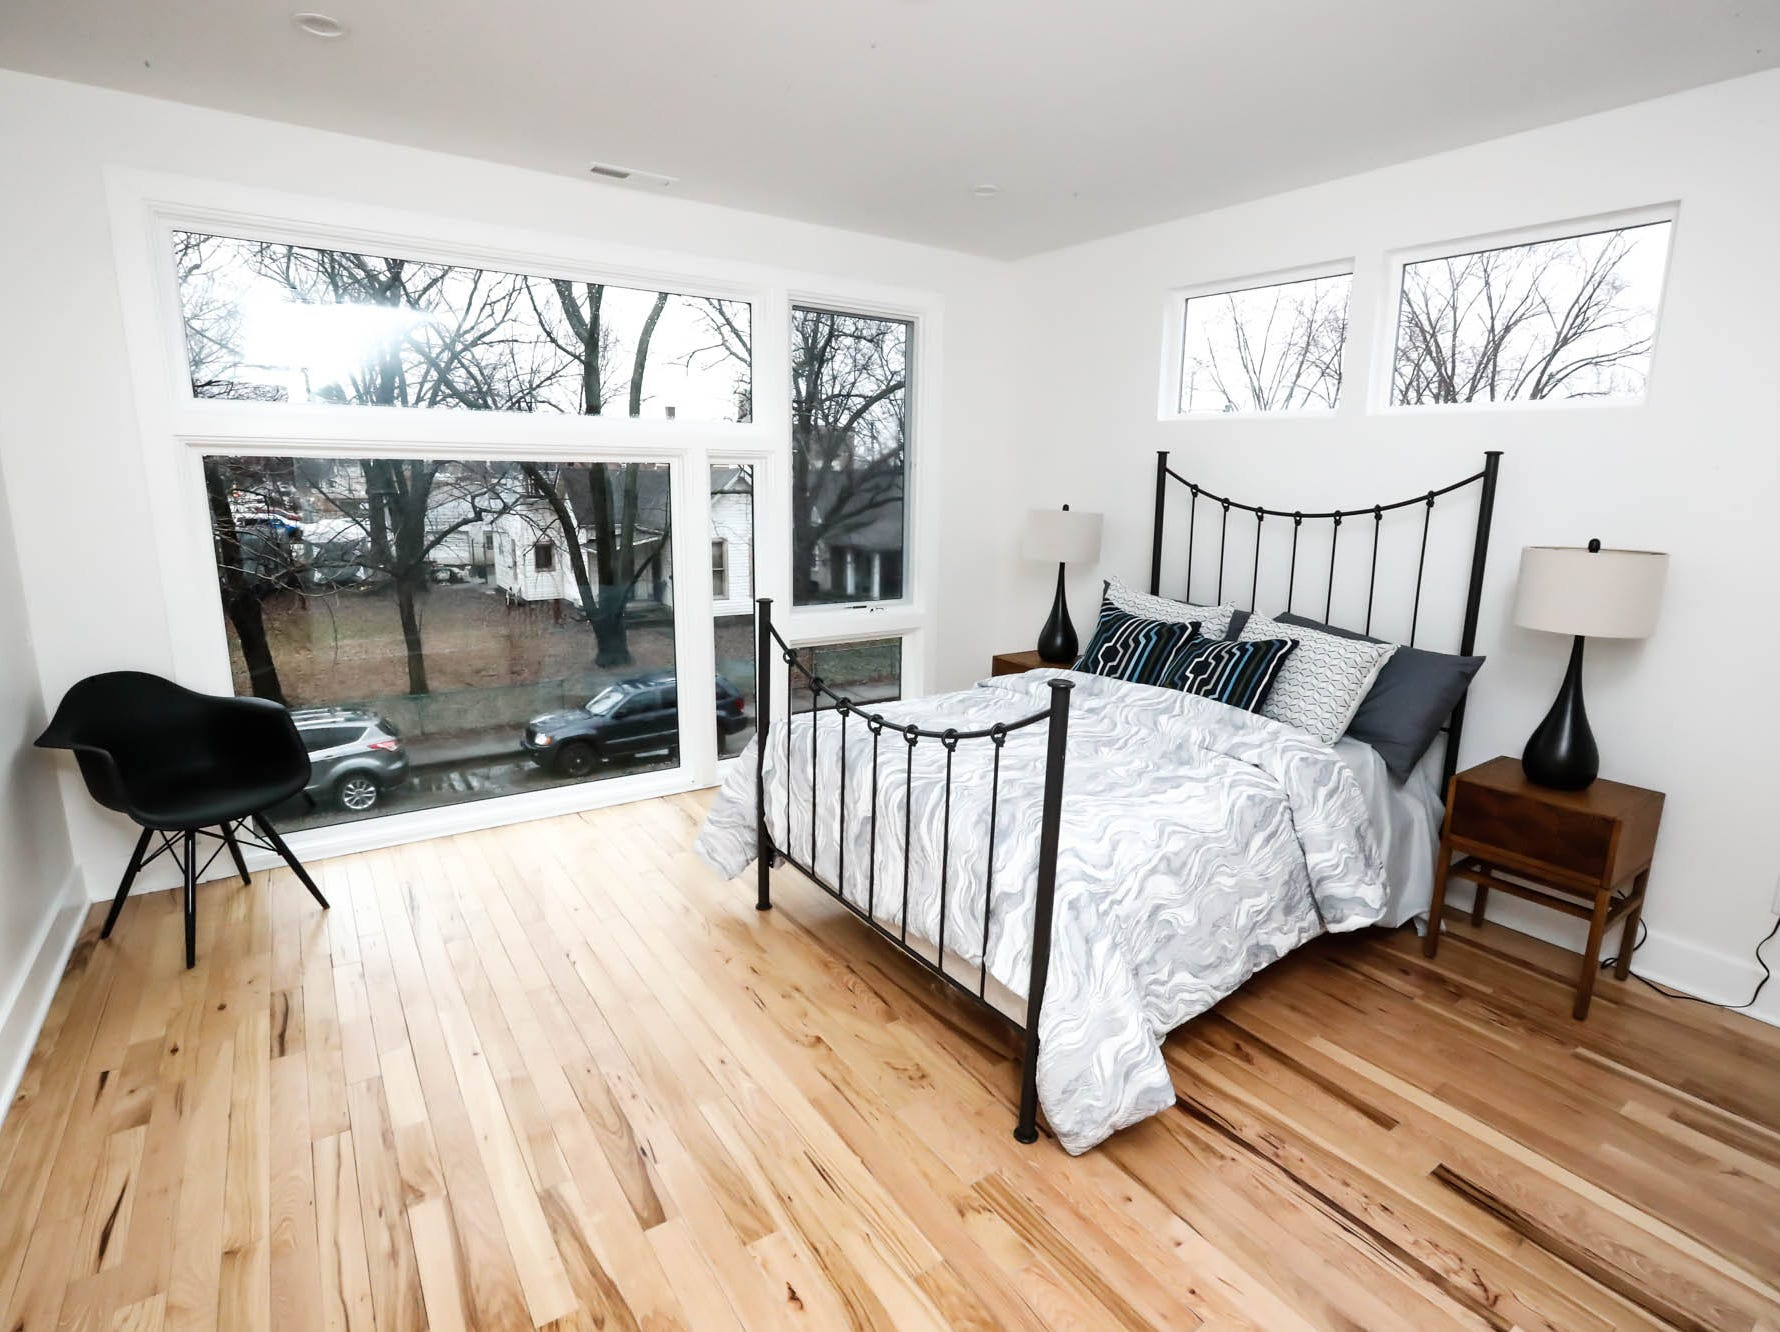 A second-floor bedroom features large windows inside a newly built modern architectural home up for sale at 1134 Woodlawn Ave., Indianapolis, Ind., 46203, in the heart of the historic Fountain Square neighborhood on Wednesday, January 23, 2019. The three-story home, which features 2,030-square-feet and an open space concept tile and hardwood floors are priced at $479,900.